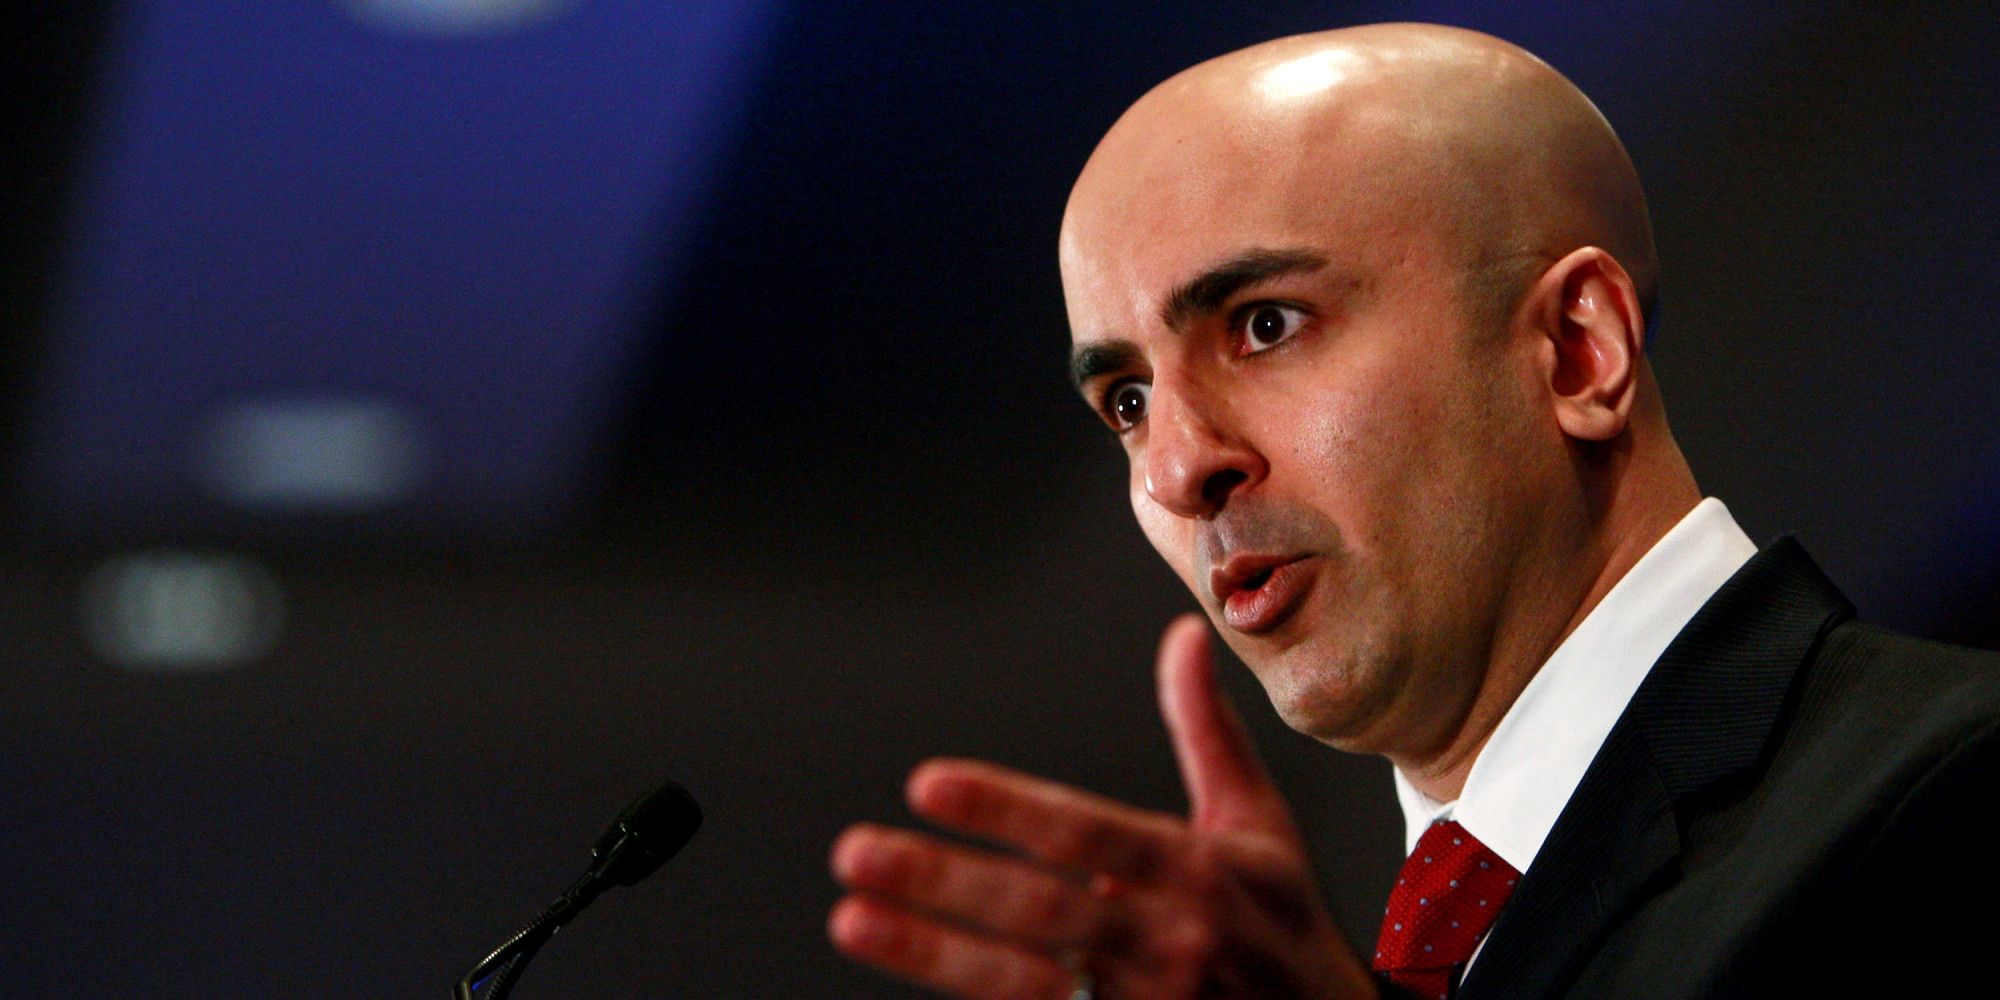 from Ephraim neel kashkari is gay